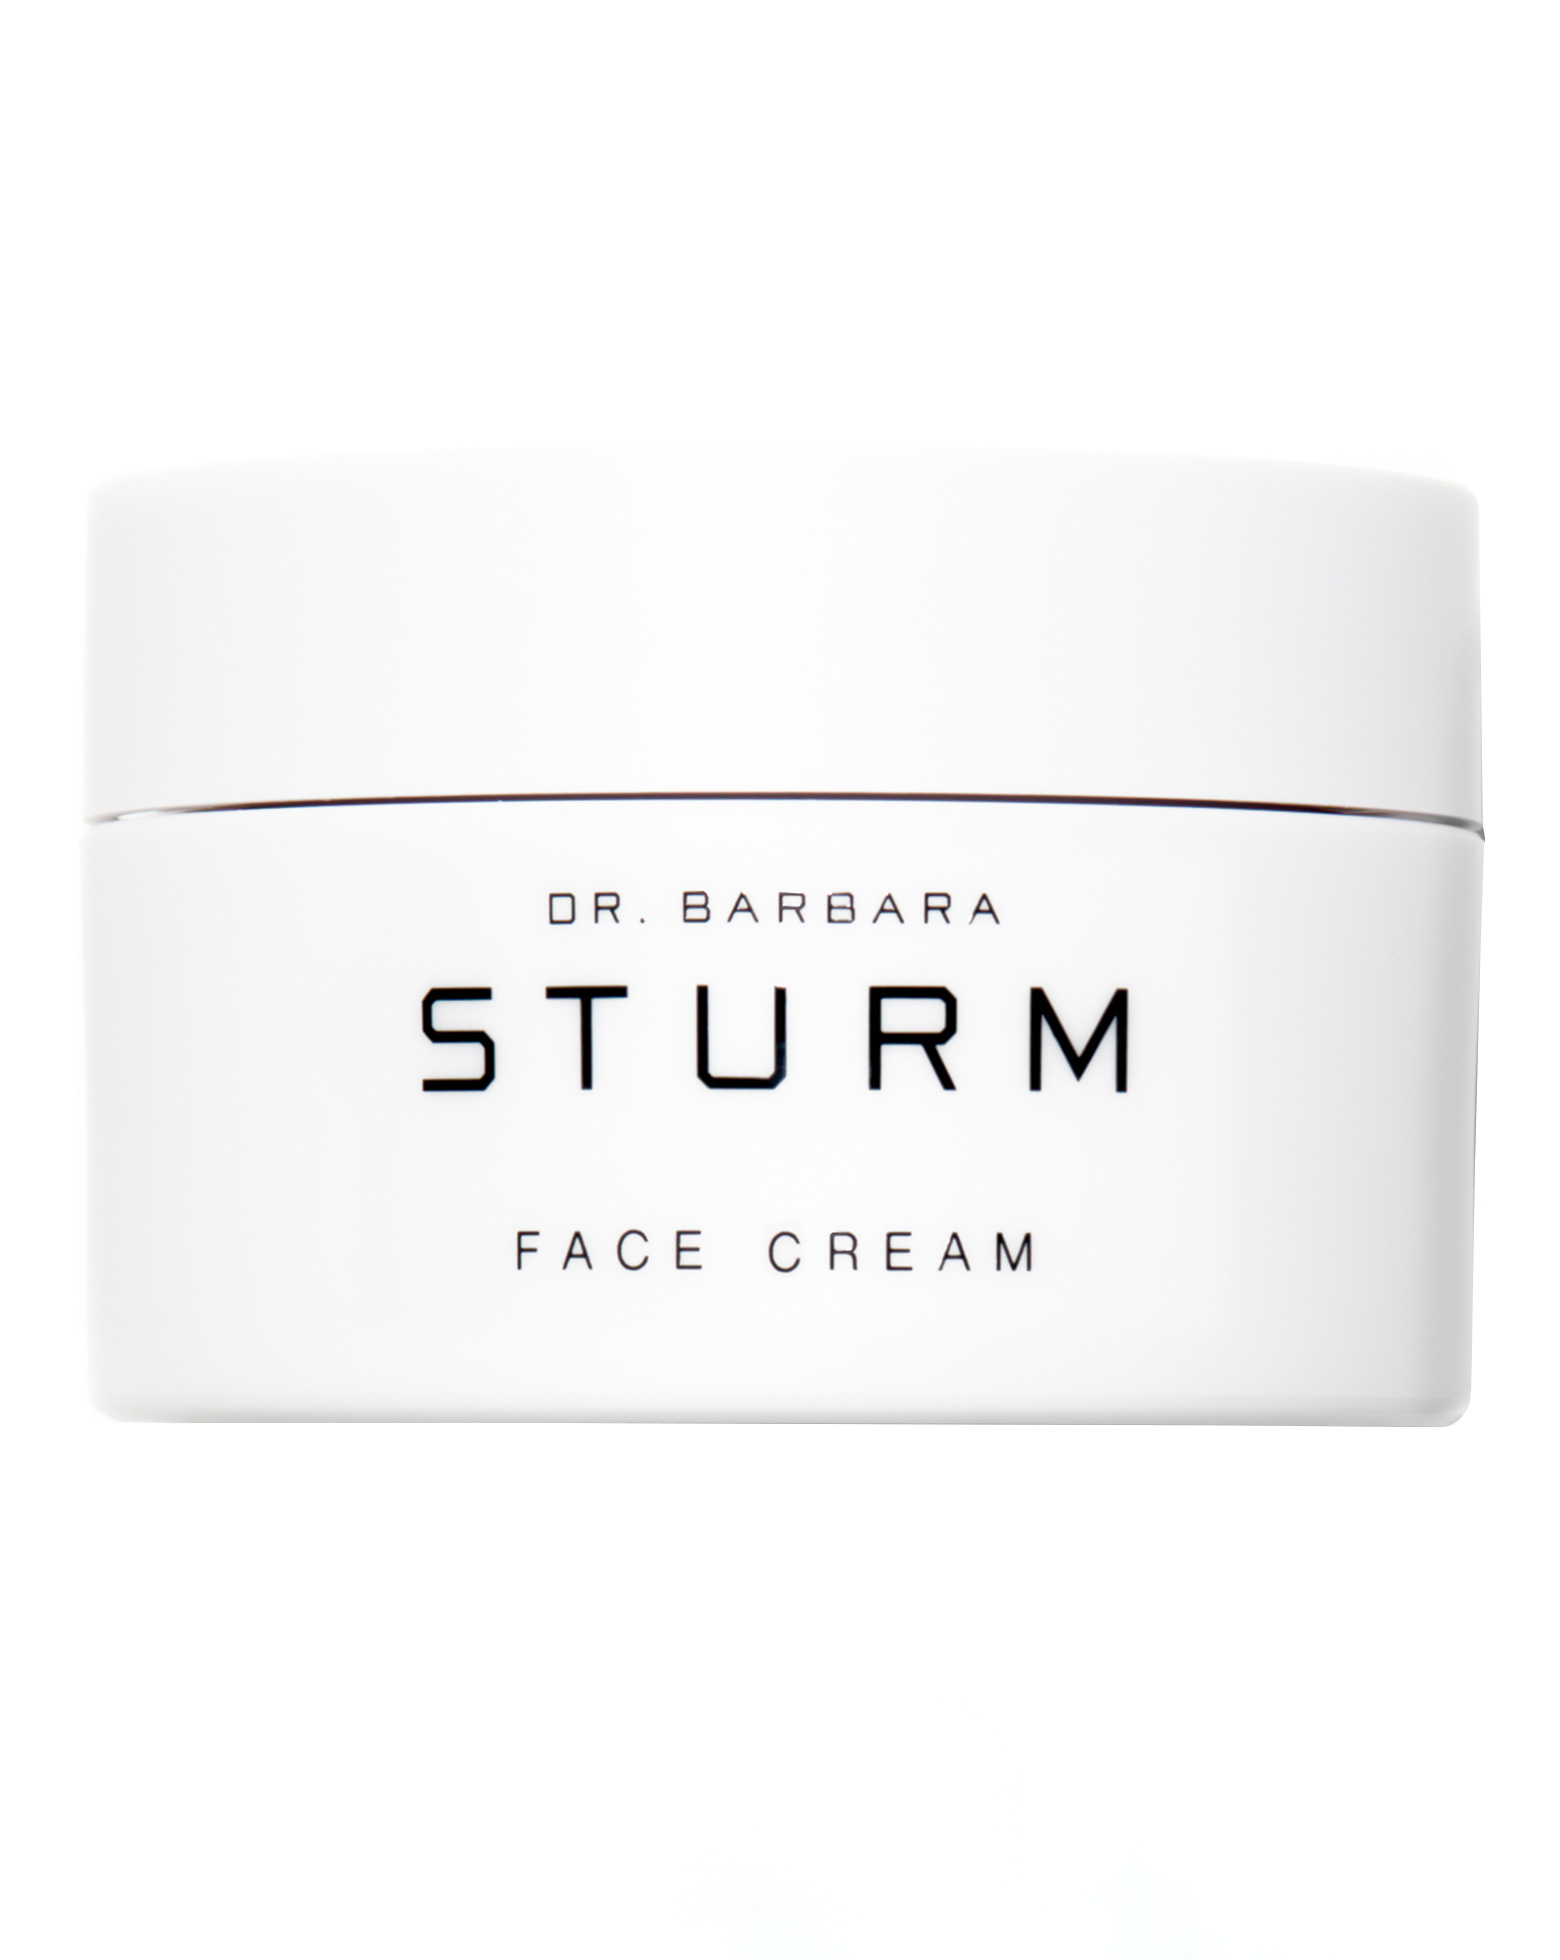 Barbara Sturm Face Cream